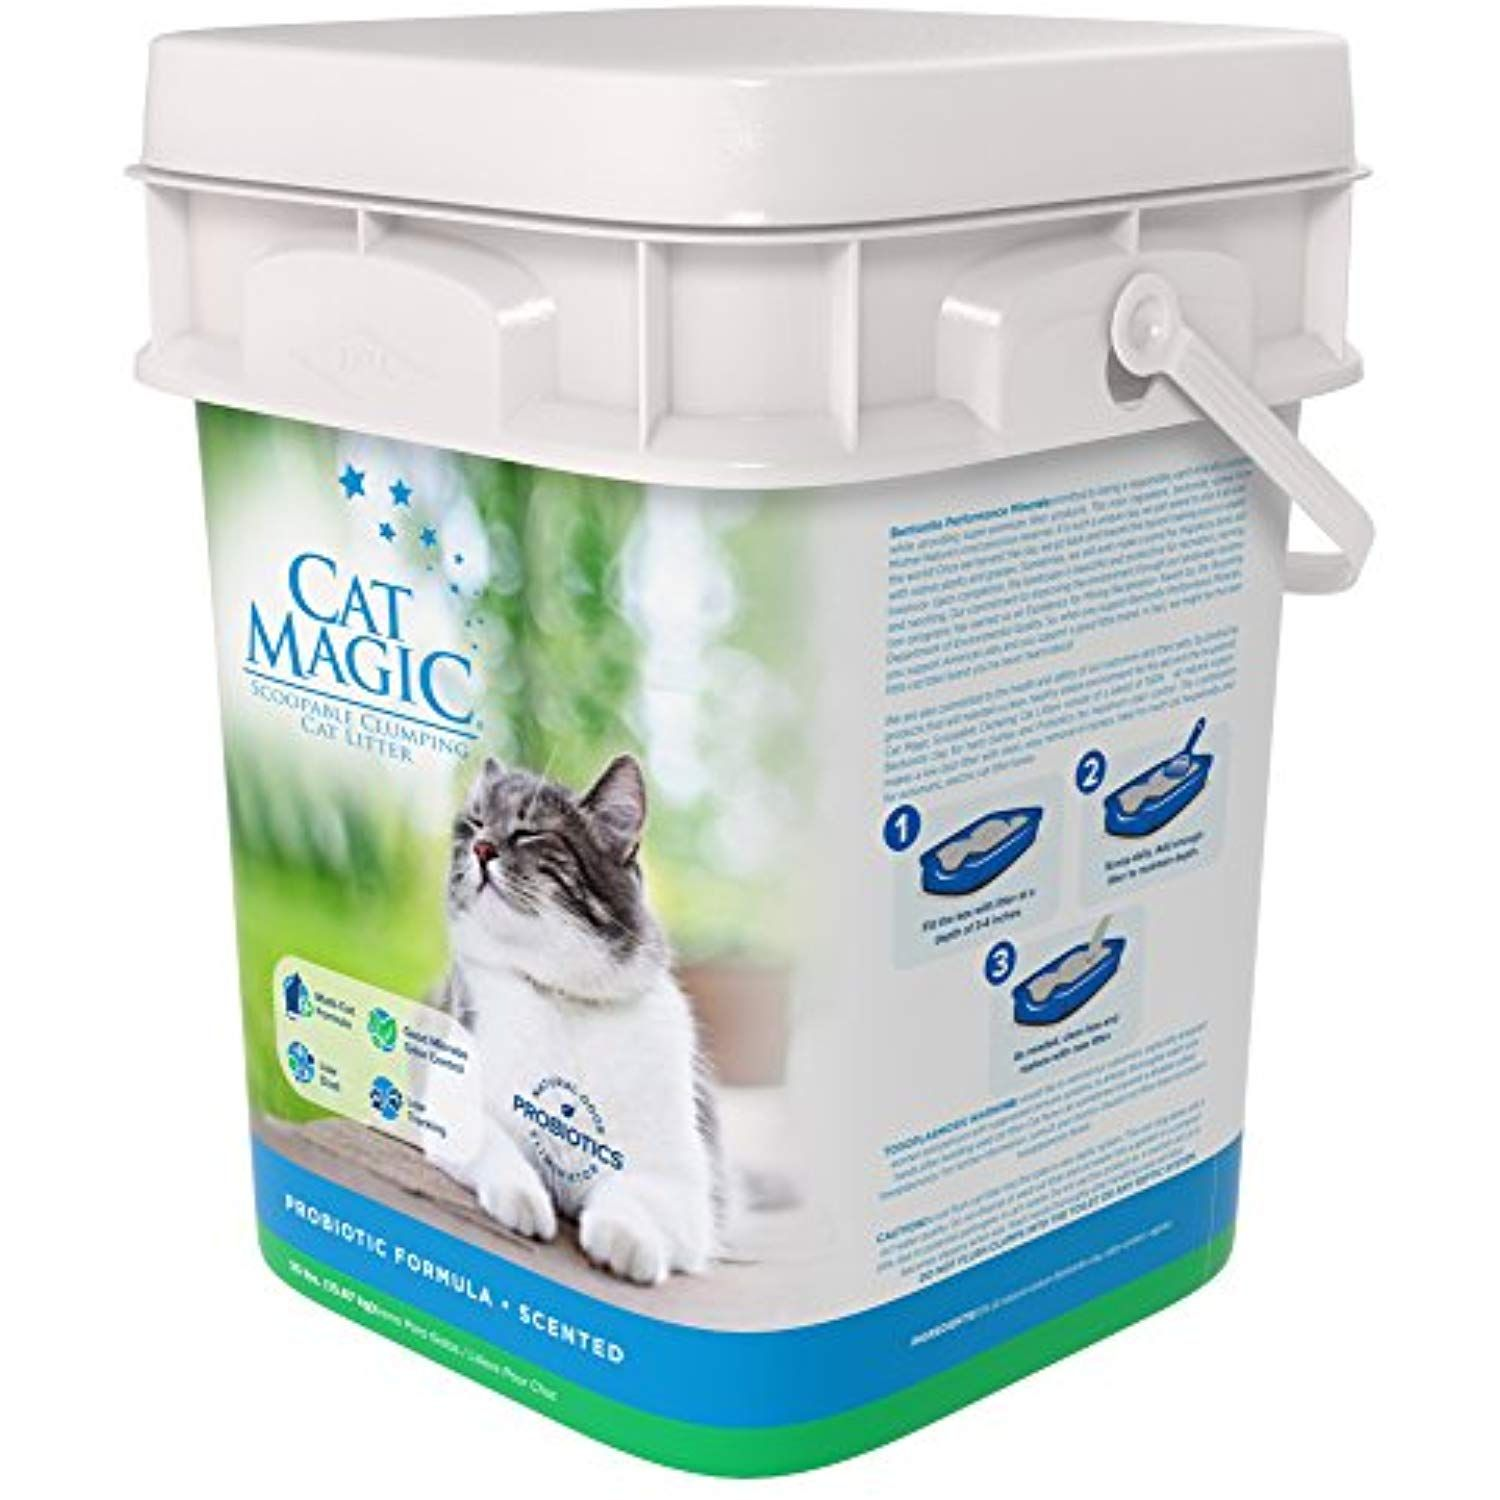 Cat Magic Scented Clumping Clay Cat Litter 35 Pound Check This